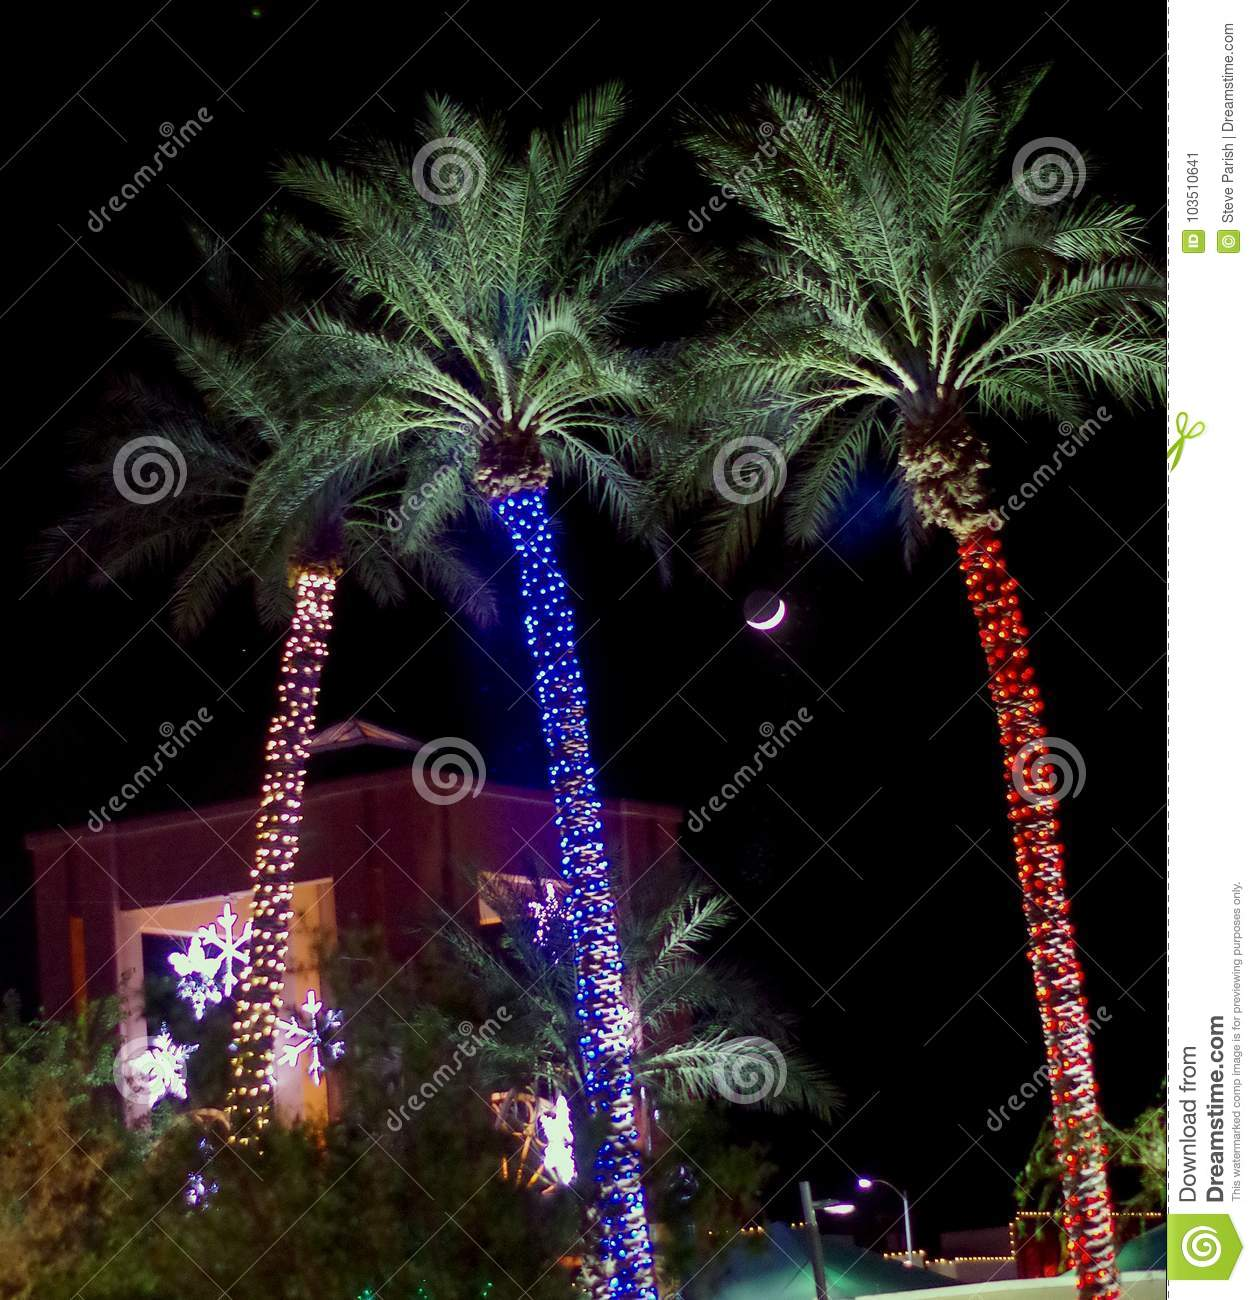 download palm trees with decorative lights christmas in arizona usa stock image image